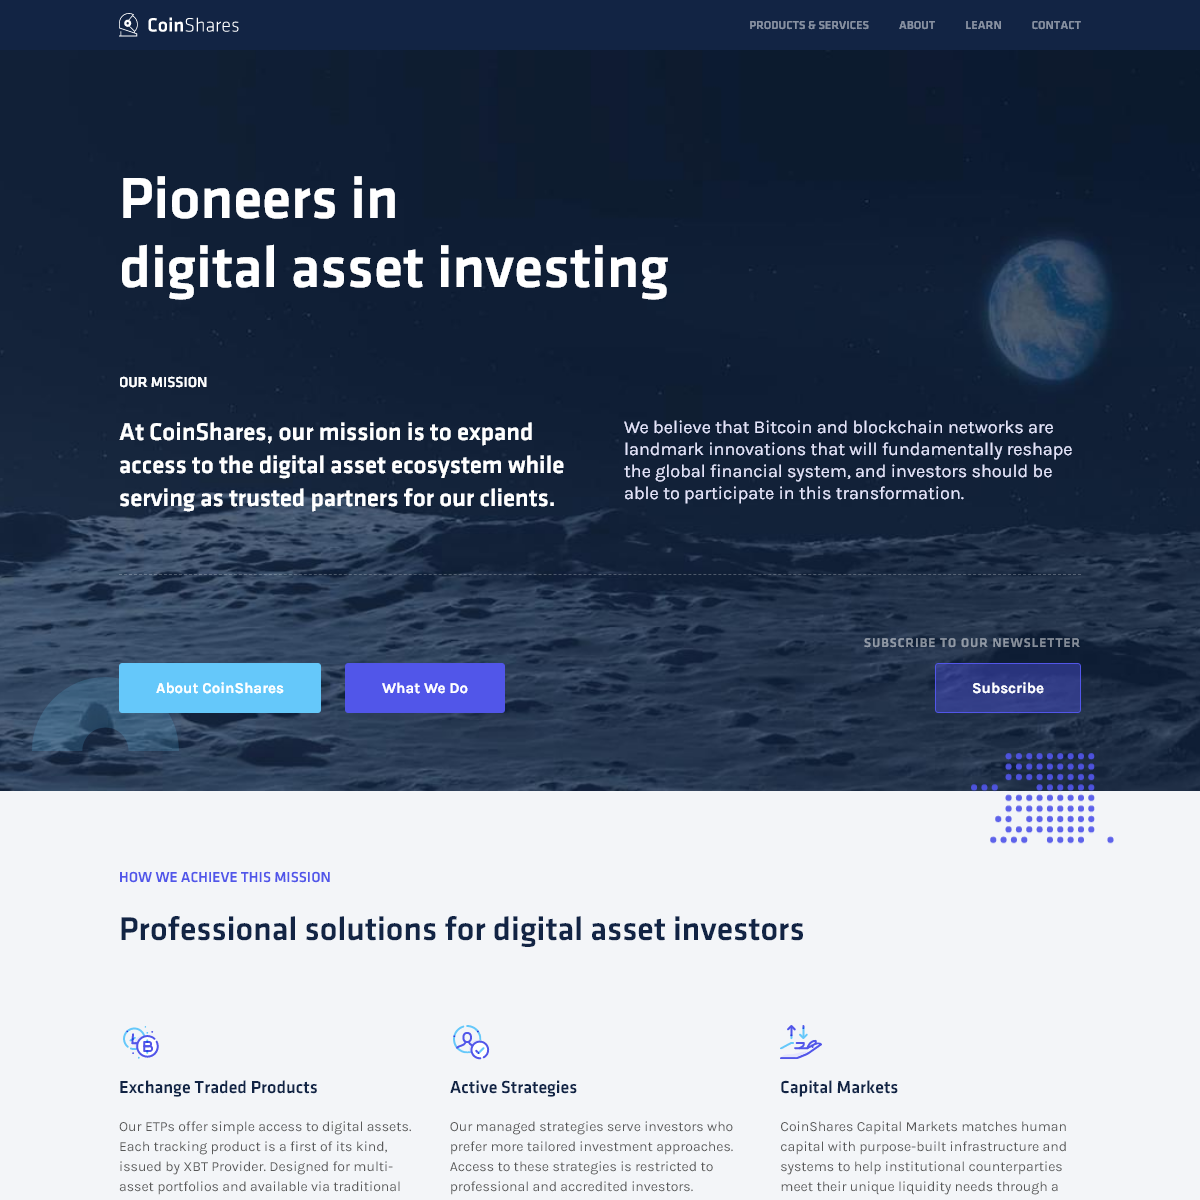 CoinShares - Digital Asset Investment Strategies for Professionals 🚀